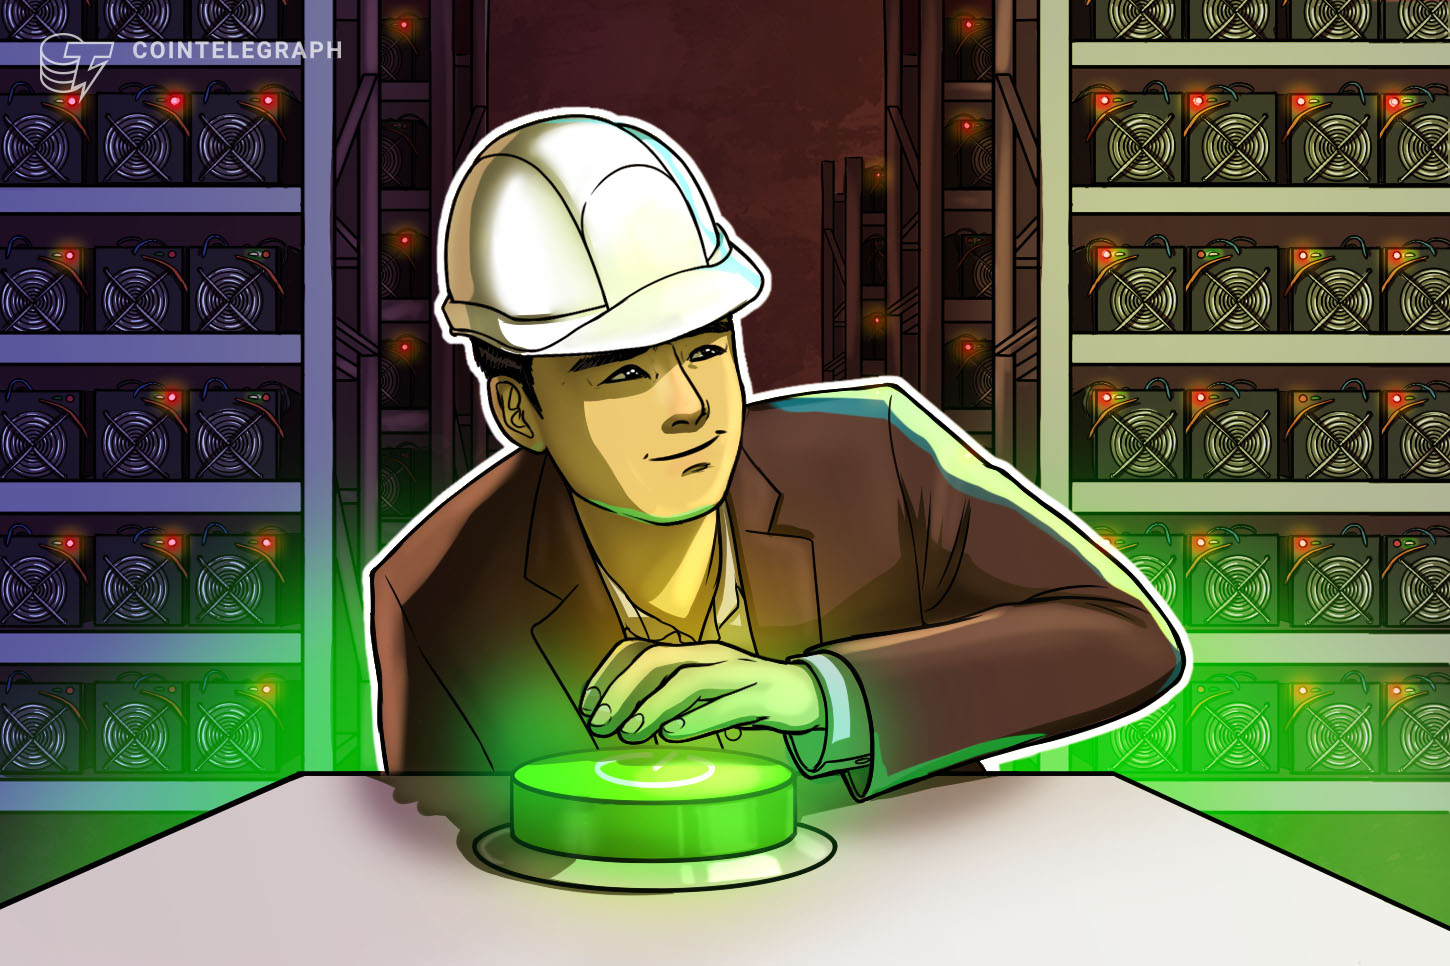 Kazakhstan says it will double its digital currency mining investment at the end of this year, and is eyeing a CBDC.